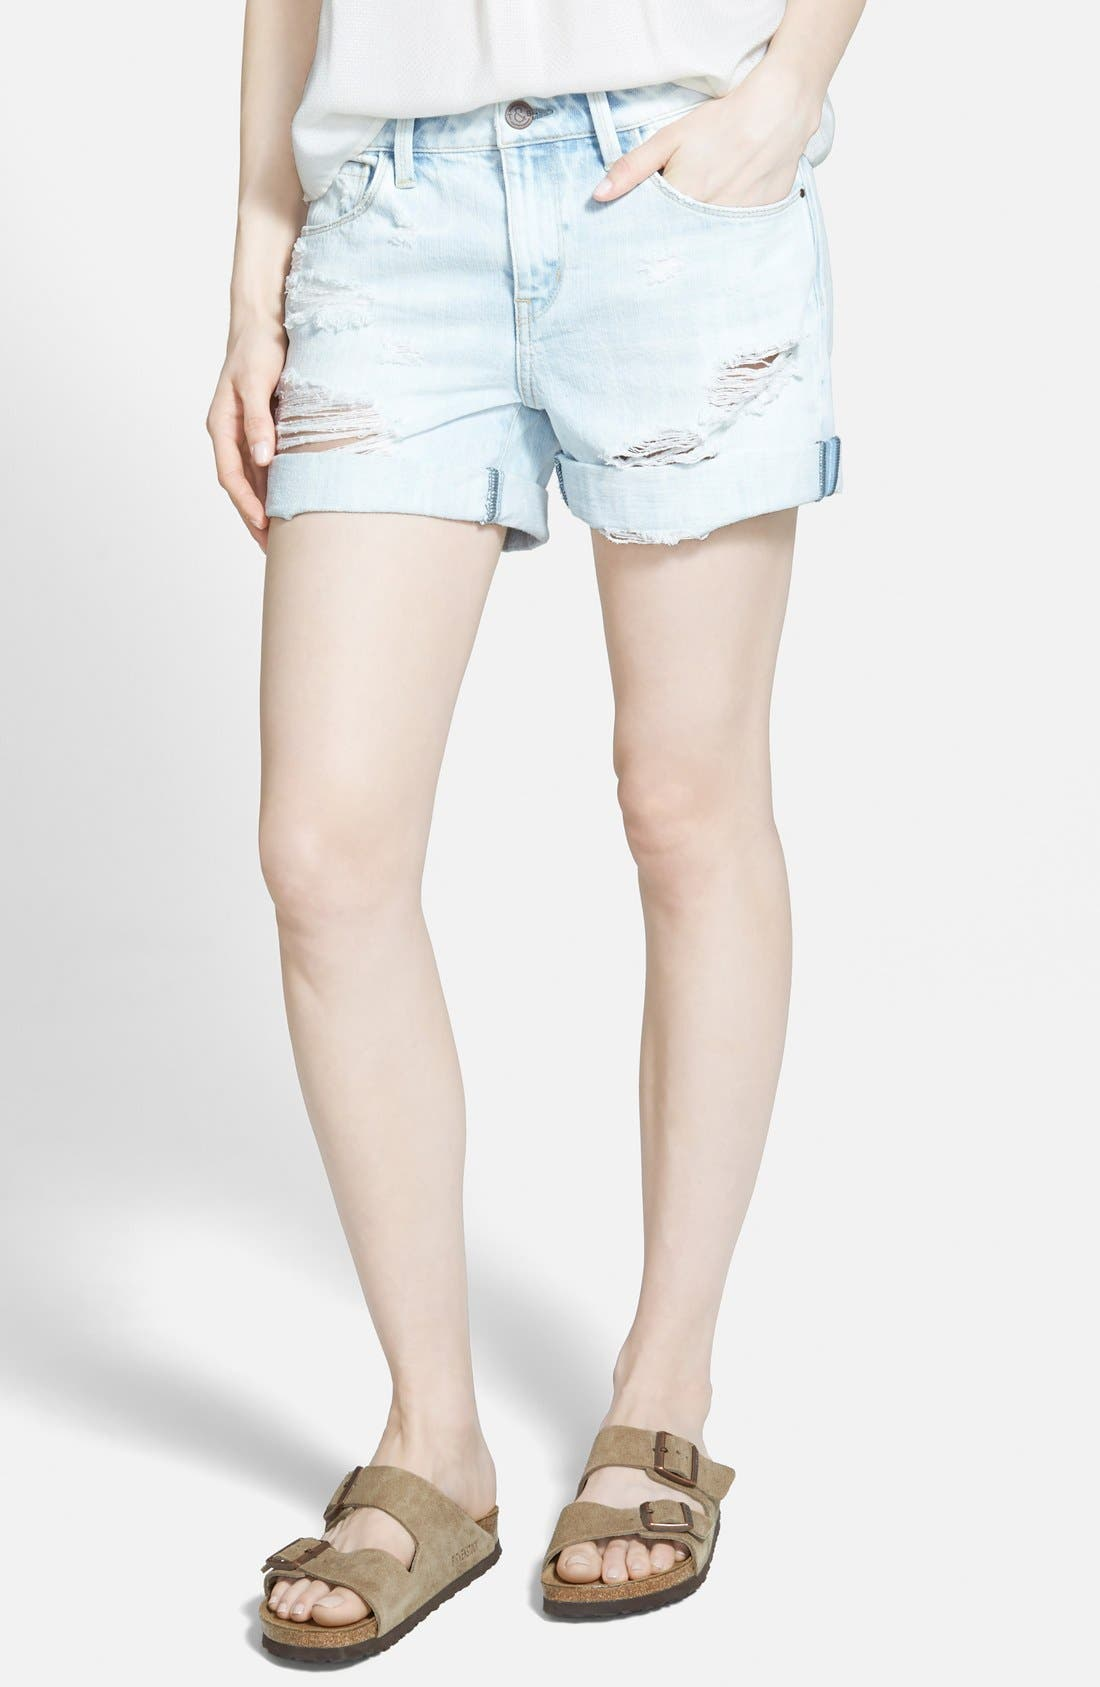 TREASURE & BOND, Treasure&Bond Roll-Up Denim Boyfriend Shorts, Main thumbnail 1, color, 400